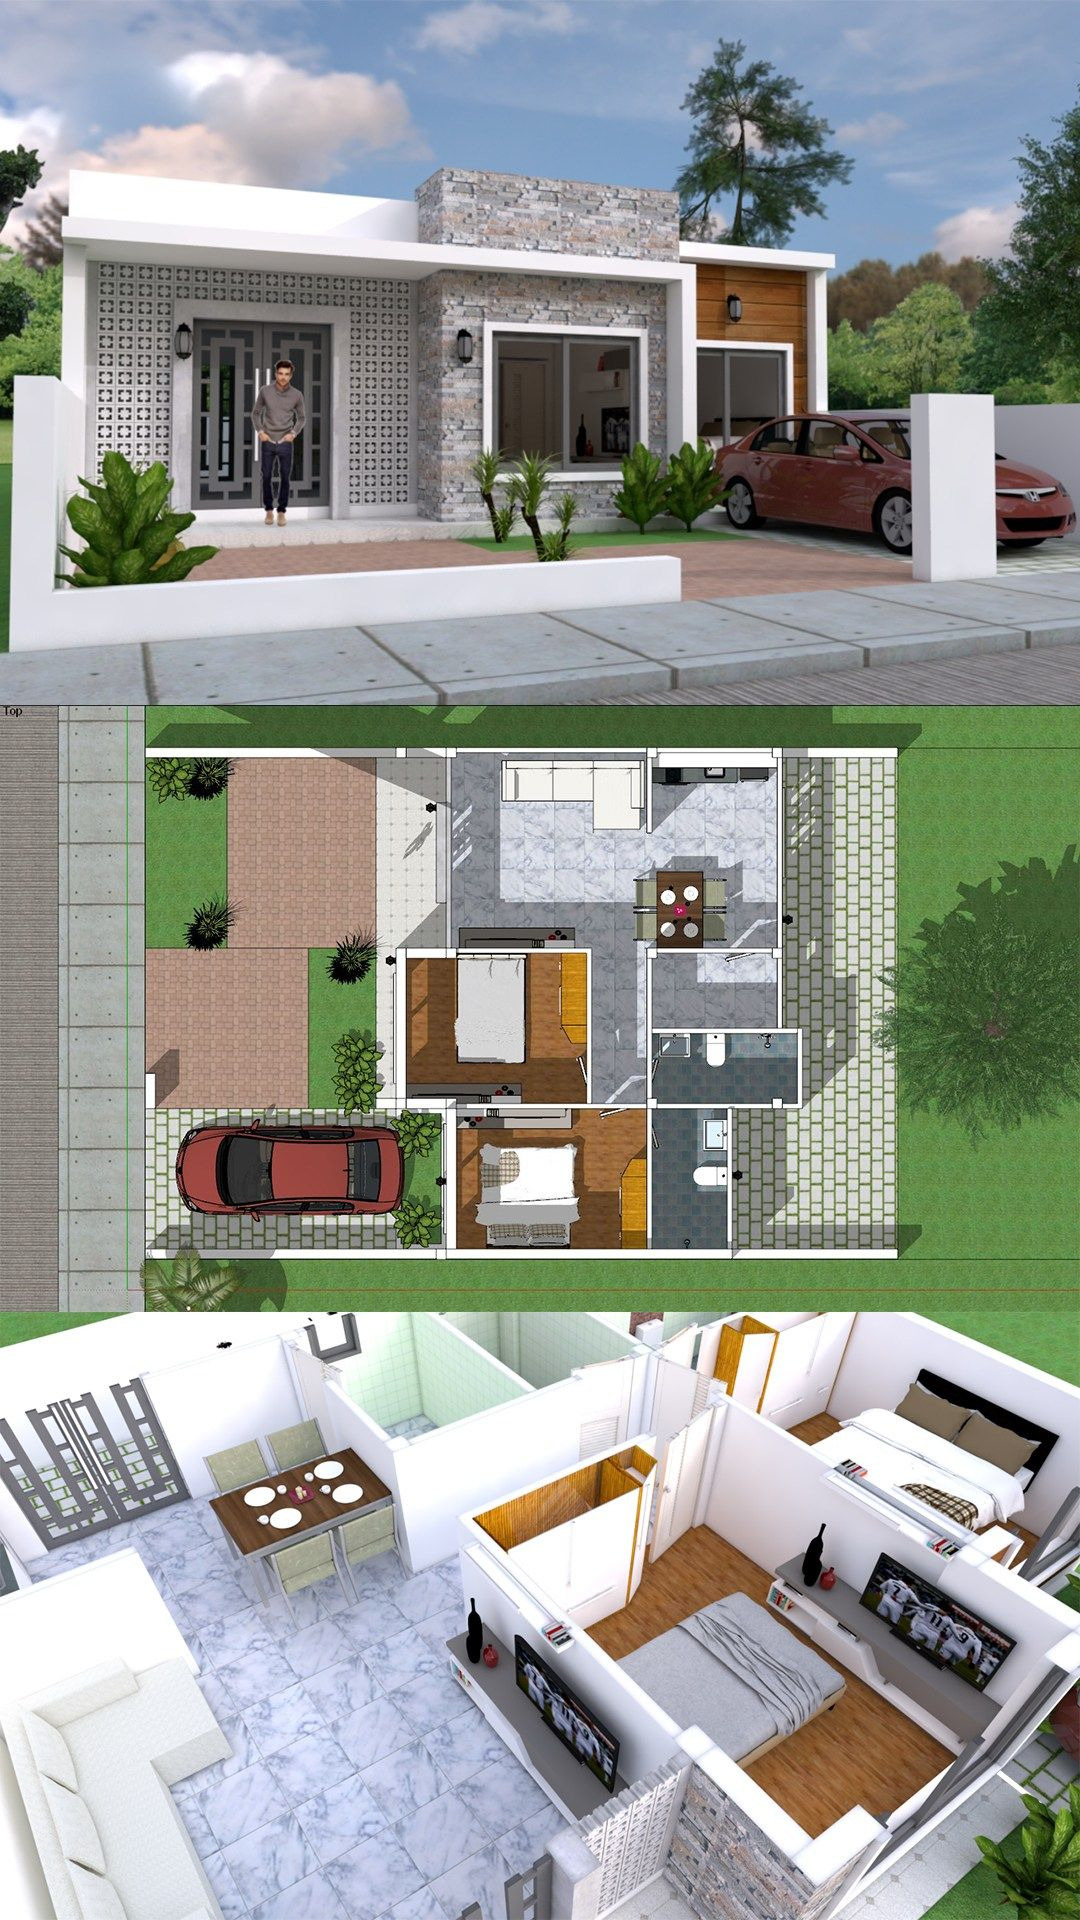 Simple Modern Home Design Lovely Simple Home Design Plan 10x8m with 2 Bedrooms Imagens